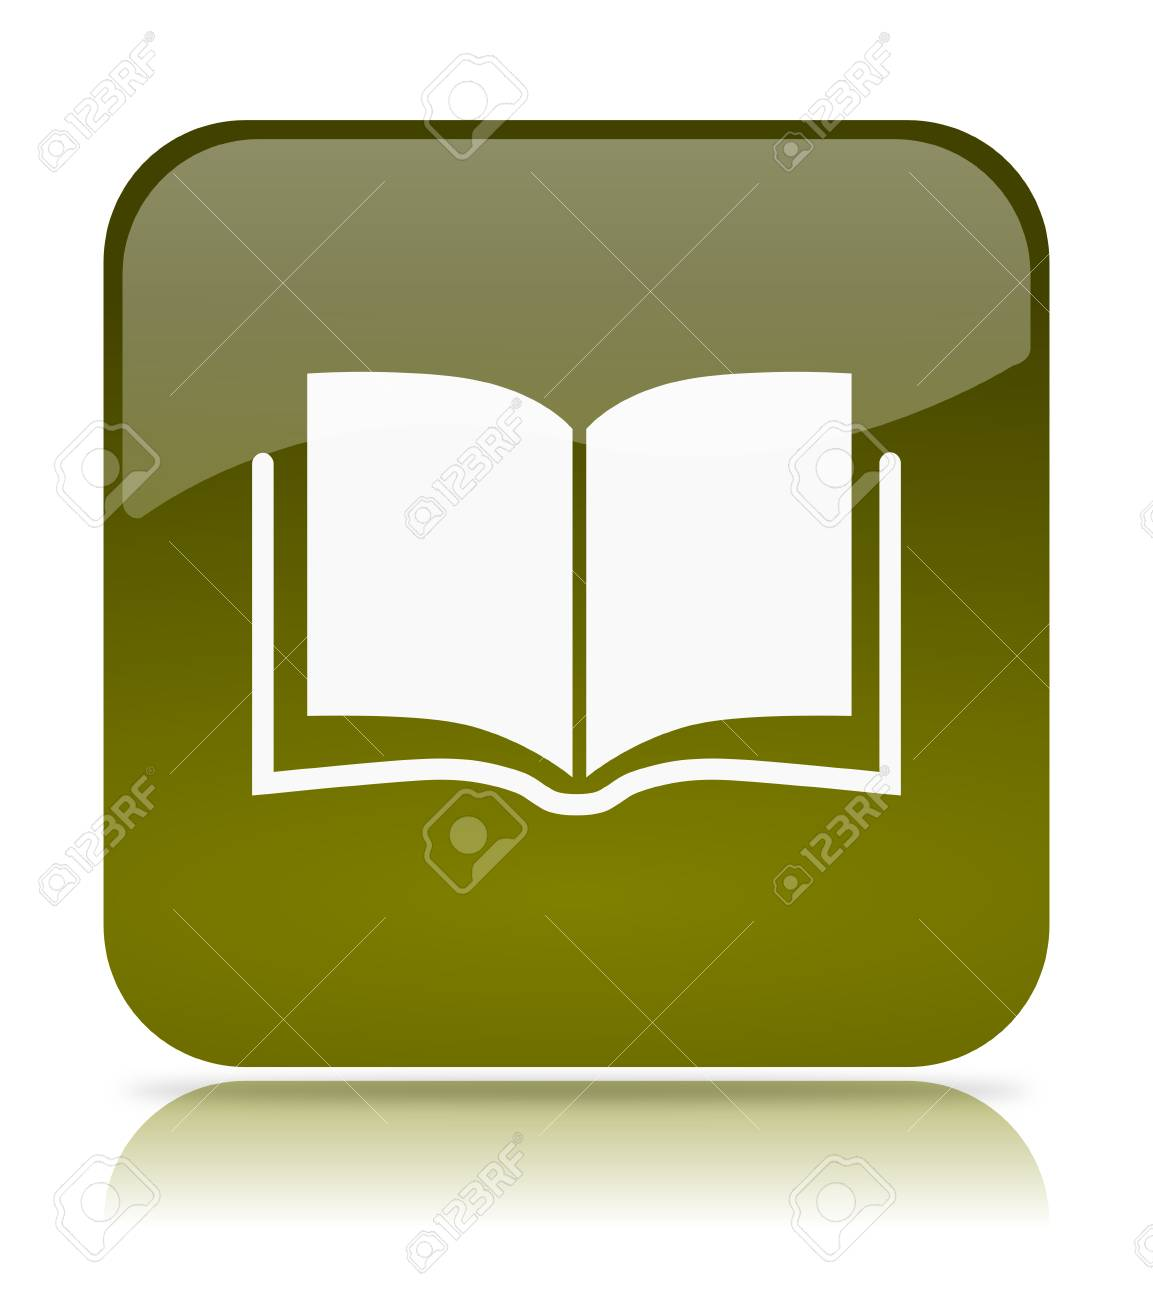 Green Book App Icon Illustration On White Background Stock Photo Picture And Royalty Free Image Image 35820929